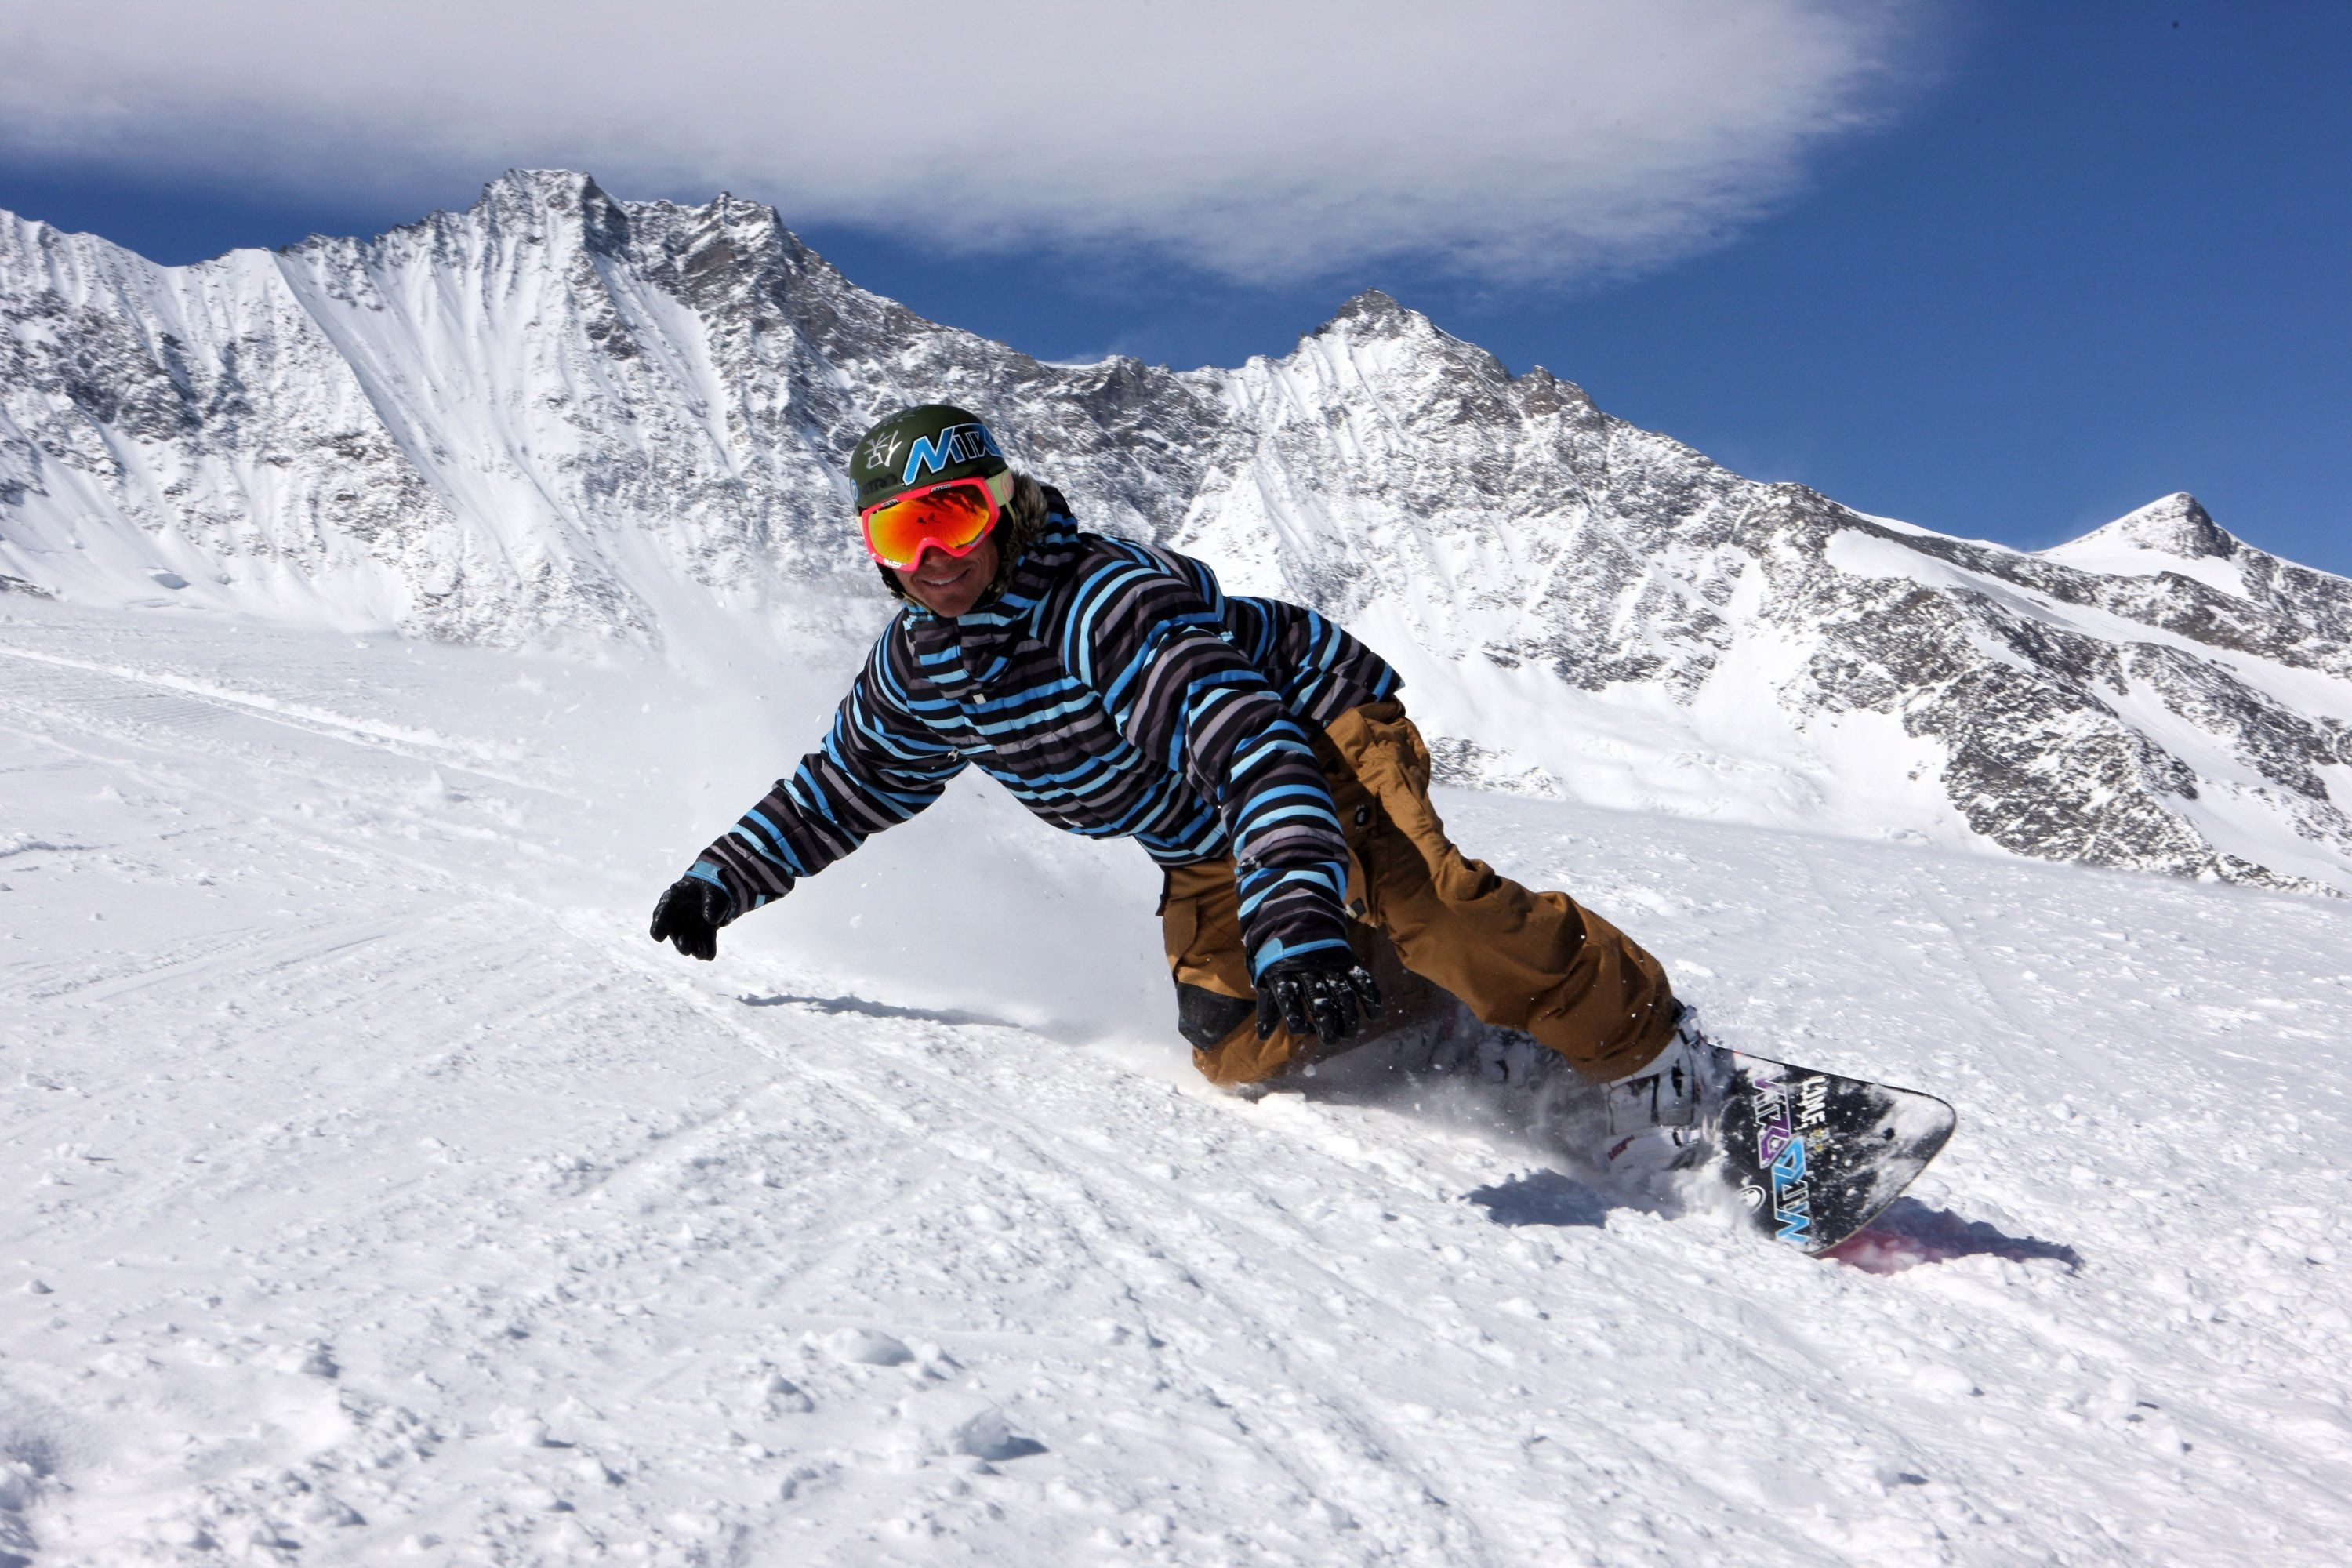 snowboarding wallpapers hd (76+ background pictures)